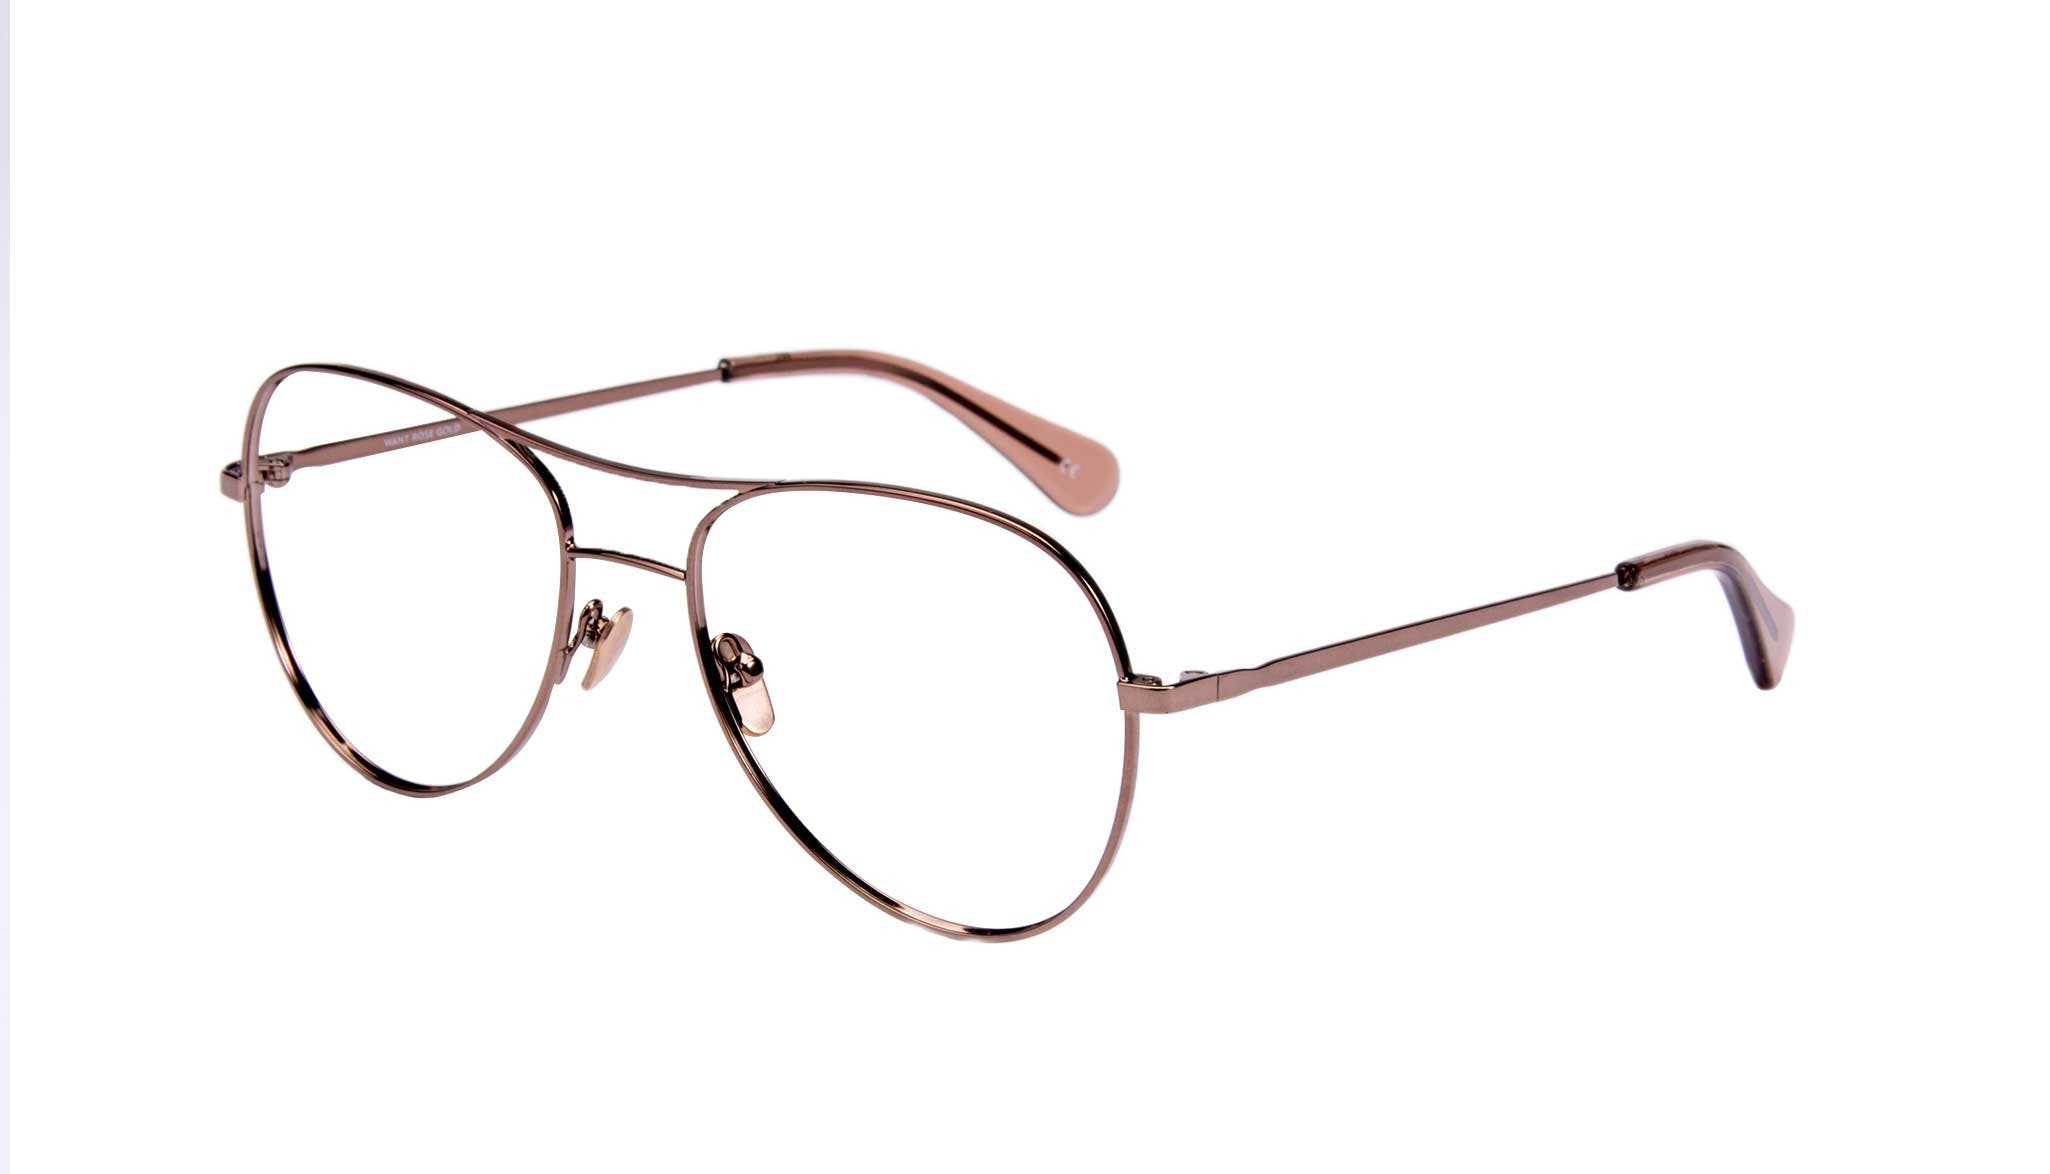 Affordable Fashion Glasses Aviator Eyeglasses Women Want Rose Gold Tilt